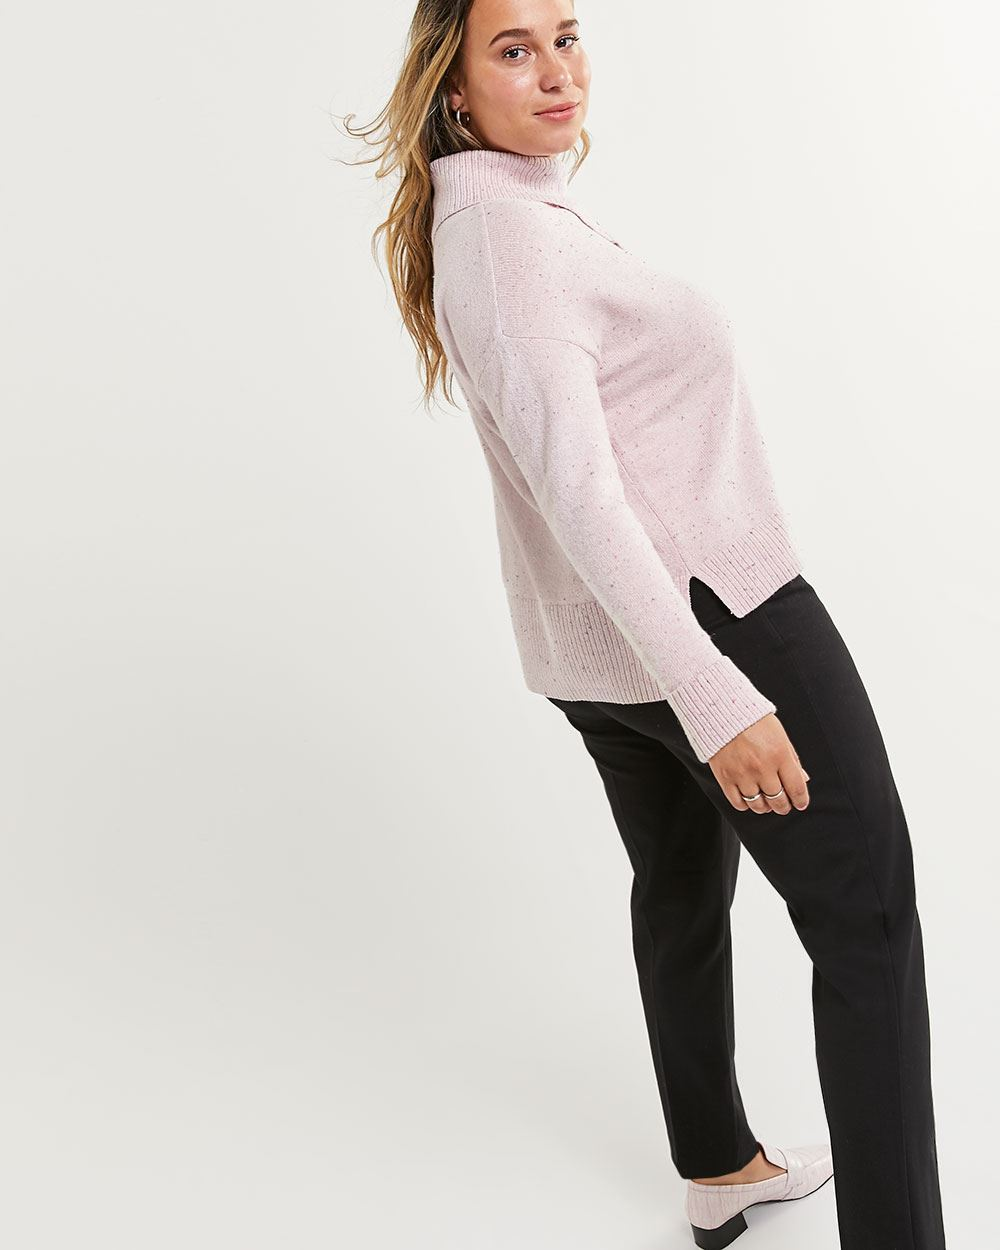 Split Turtleneck Sweater with Decorative Buttons